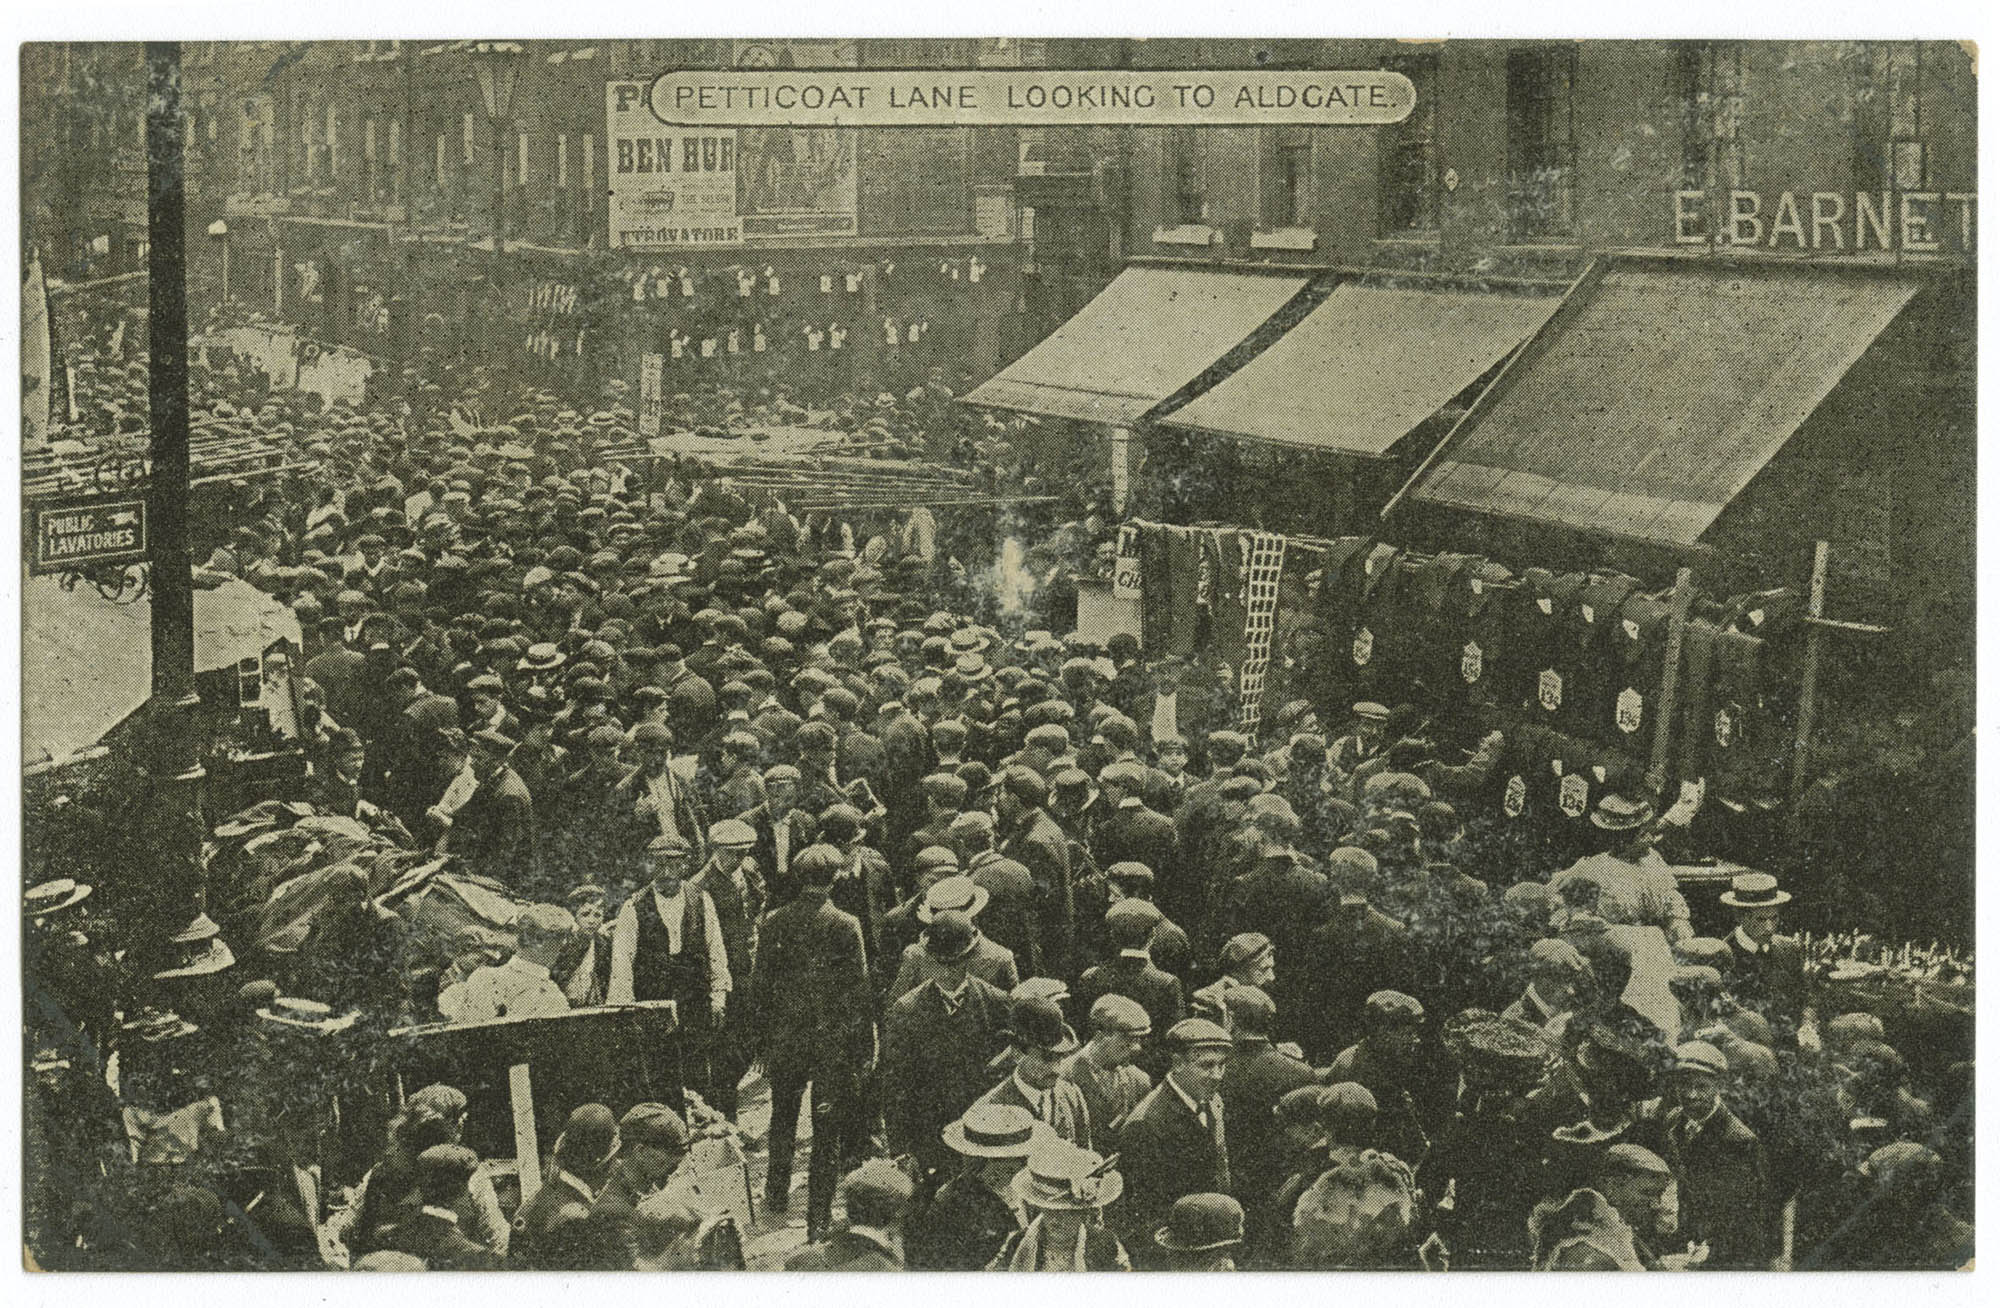 Petticoat Lane looking to Aldgate